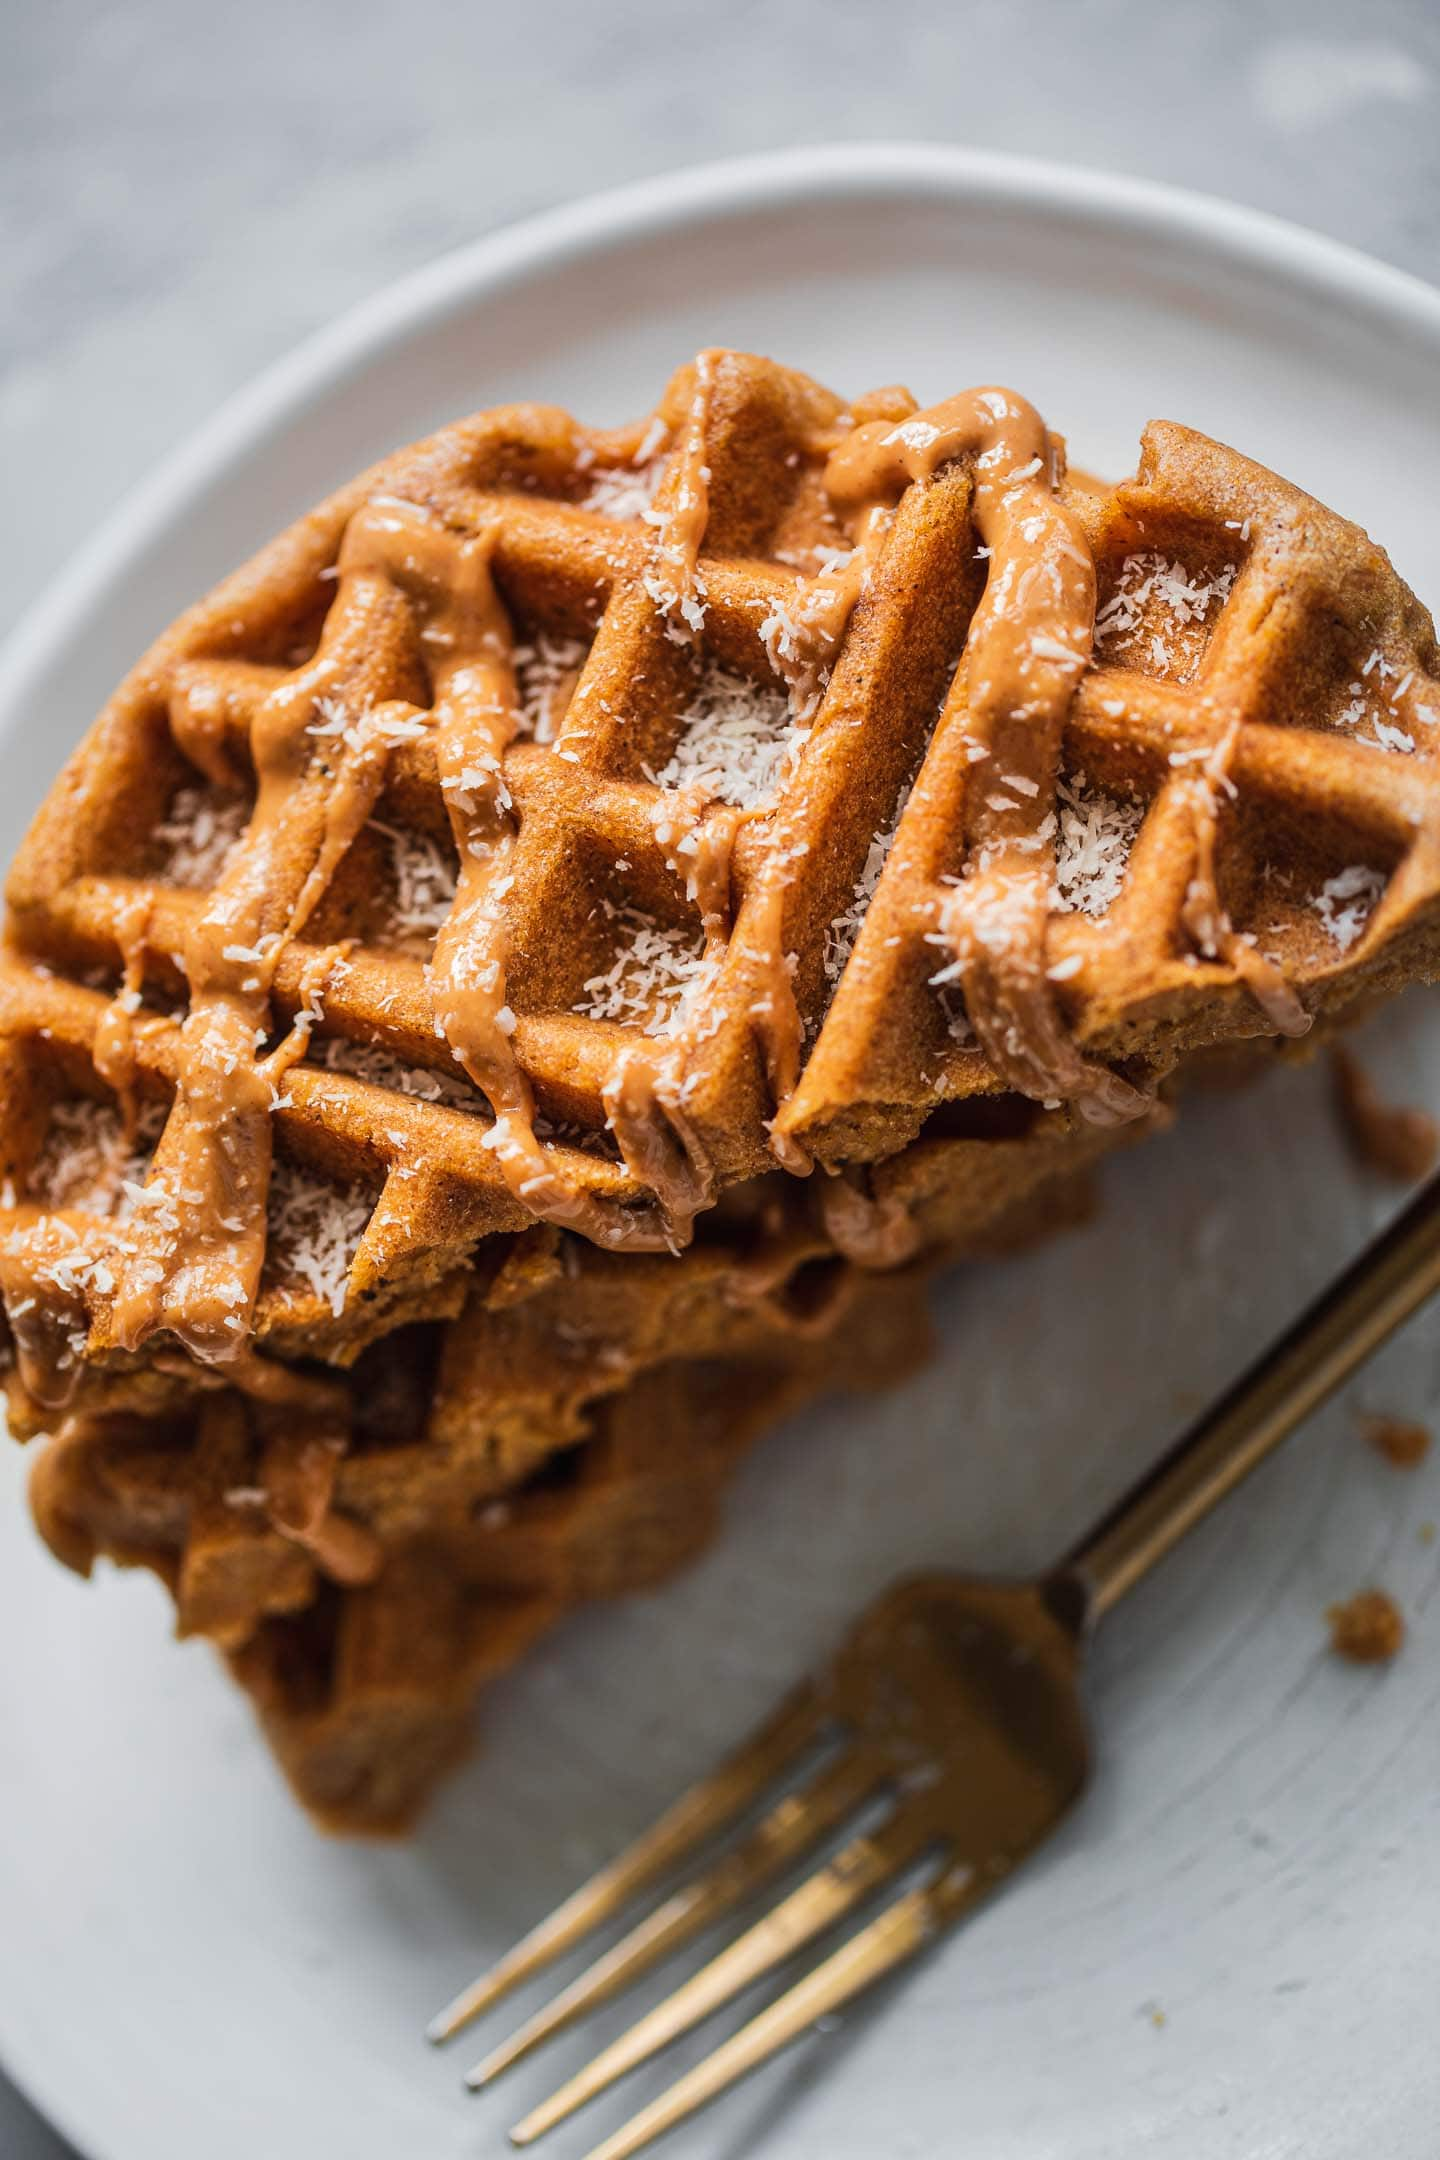 Gingerbread waffles with a drizzle of peanut butter